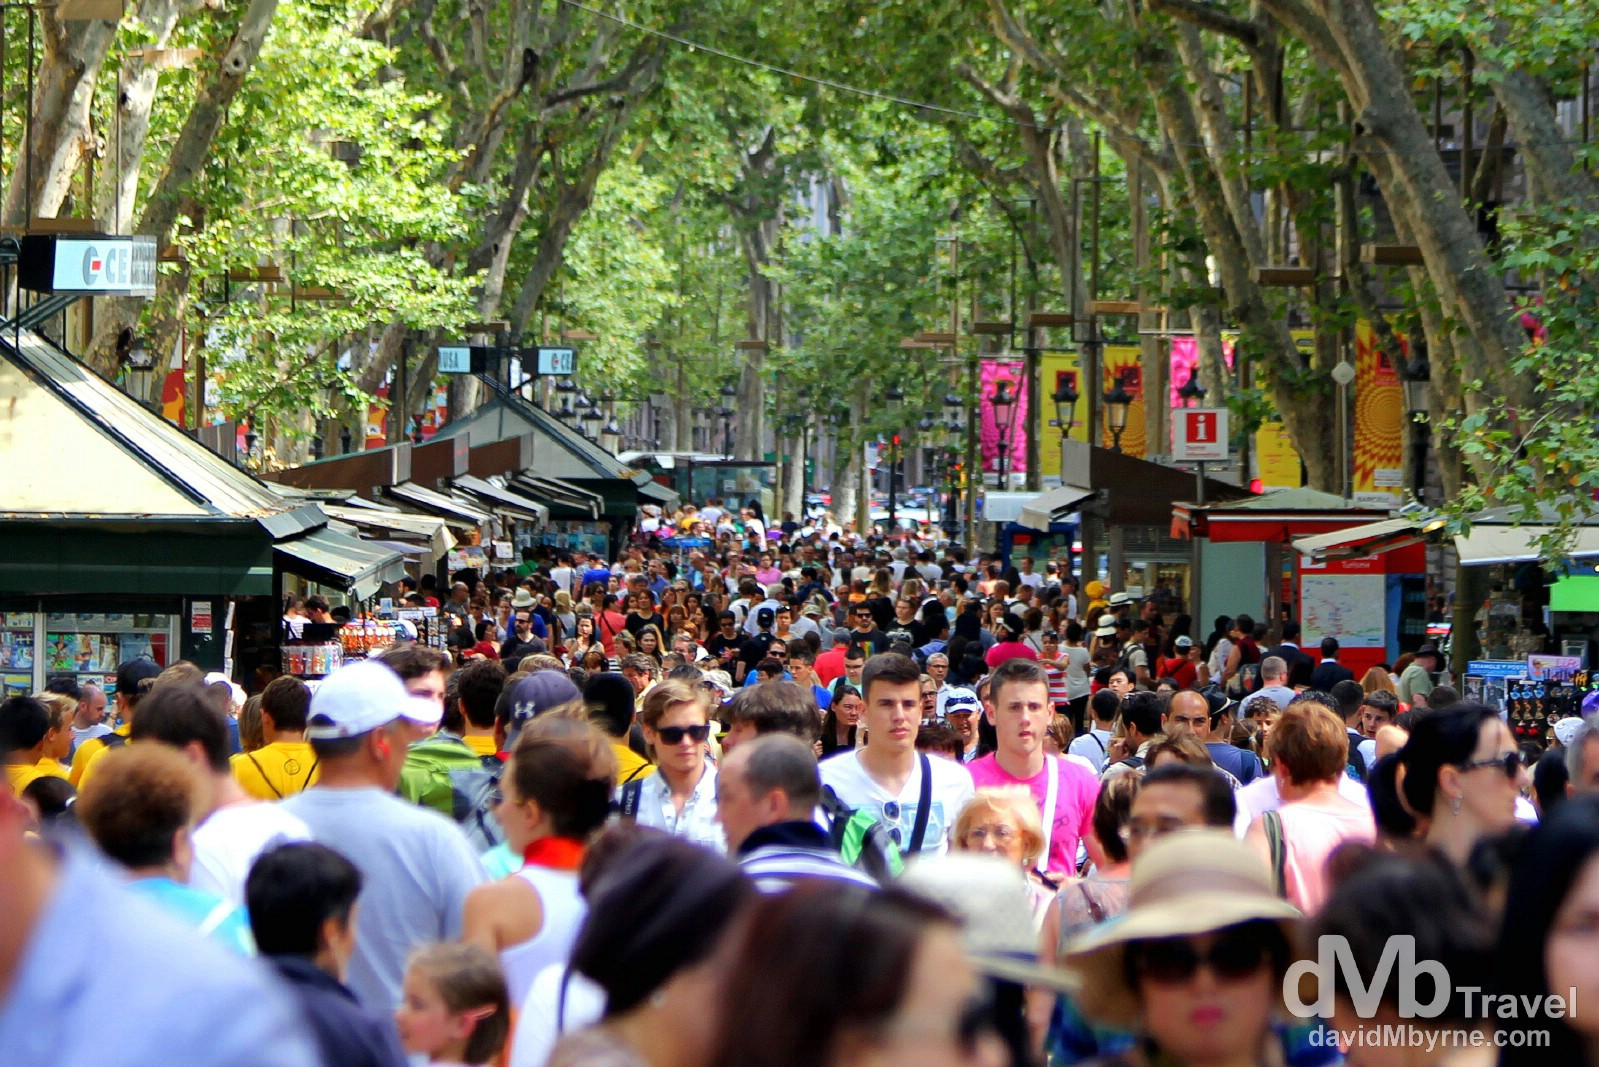 People on Spain's most famous street, La Rambla. Barcelona, Spain. June 18th, 2014.